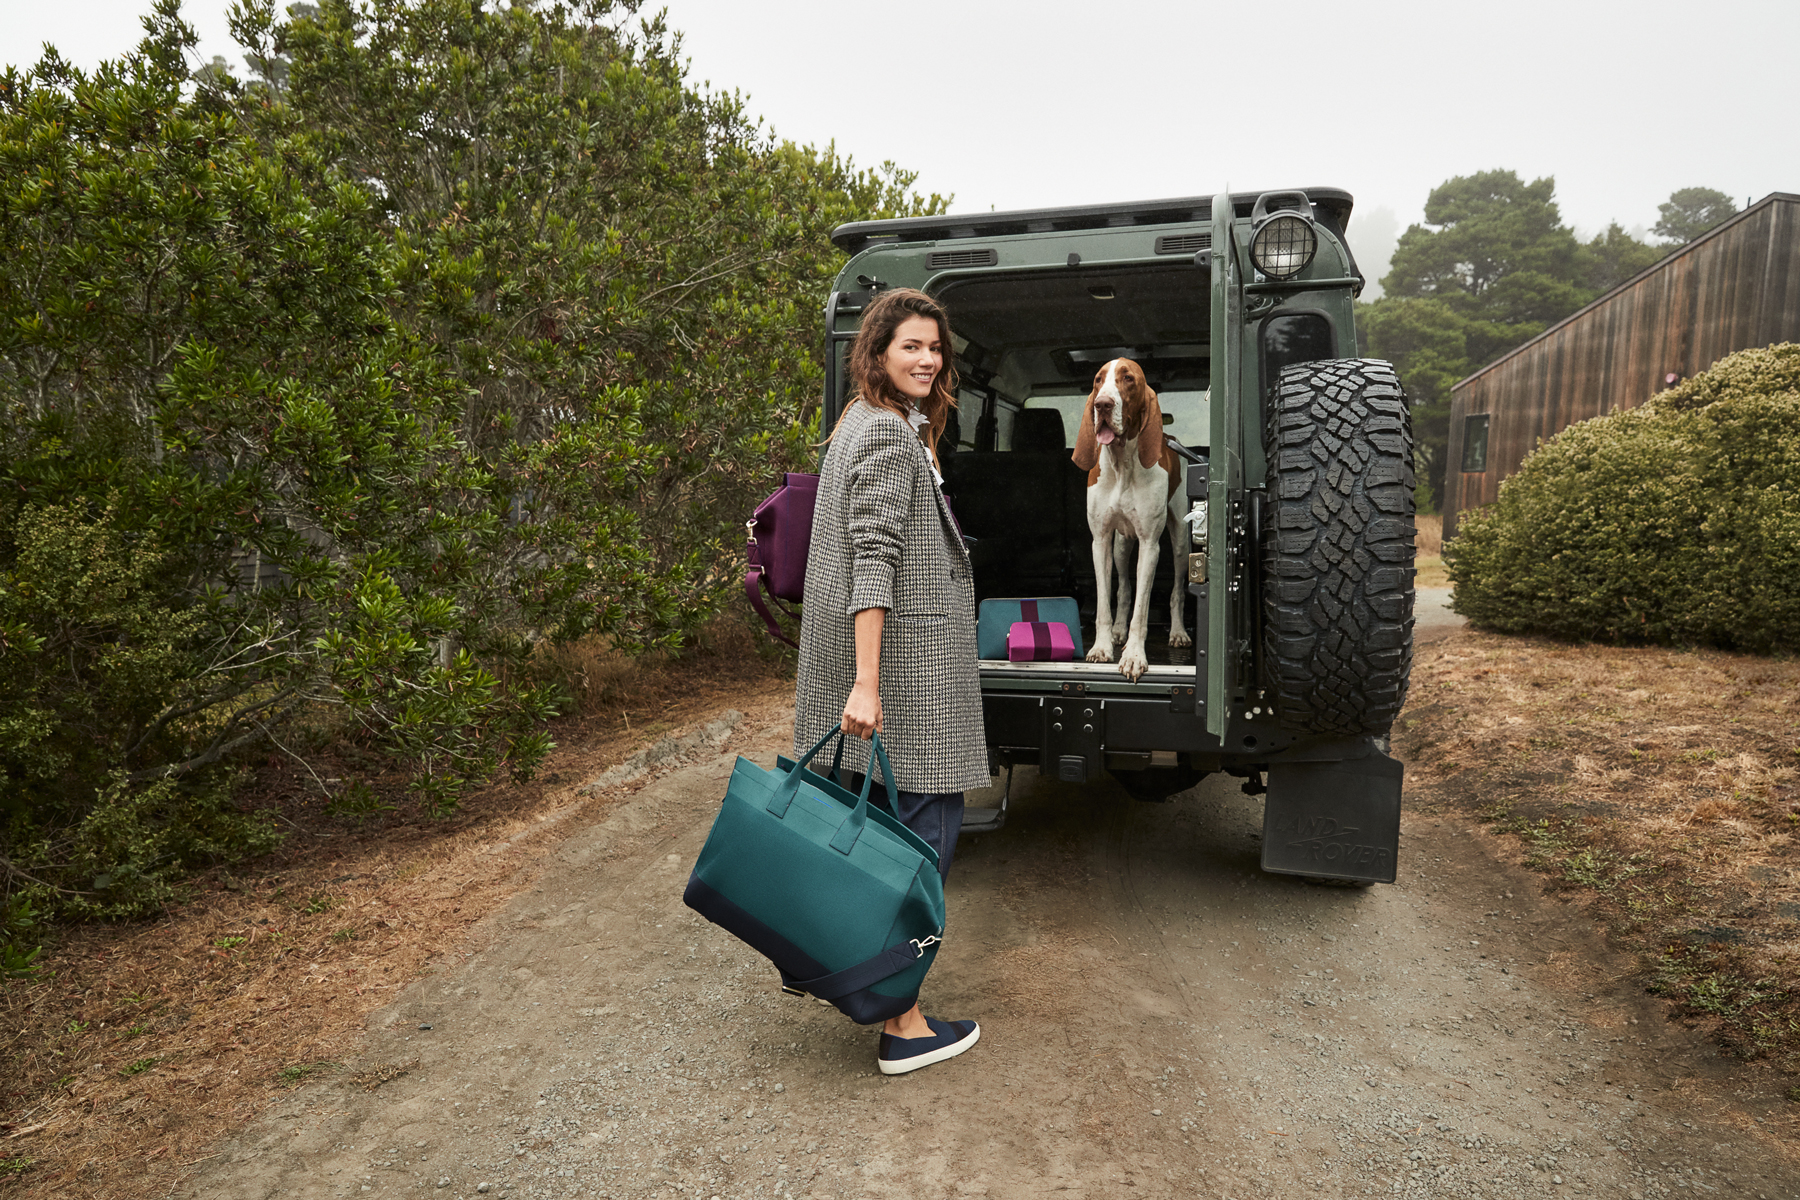 Rothy's lifestyle model with weekender tote in Deep Spruce, going on a road trip